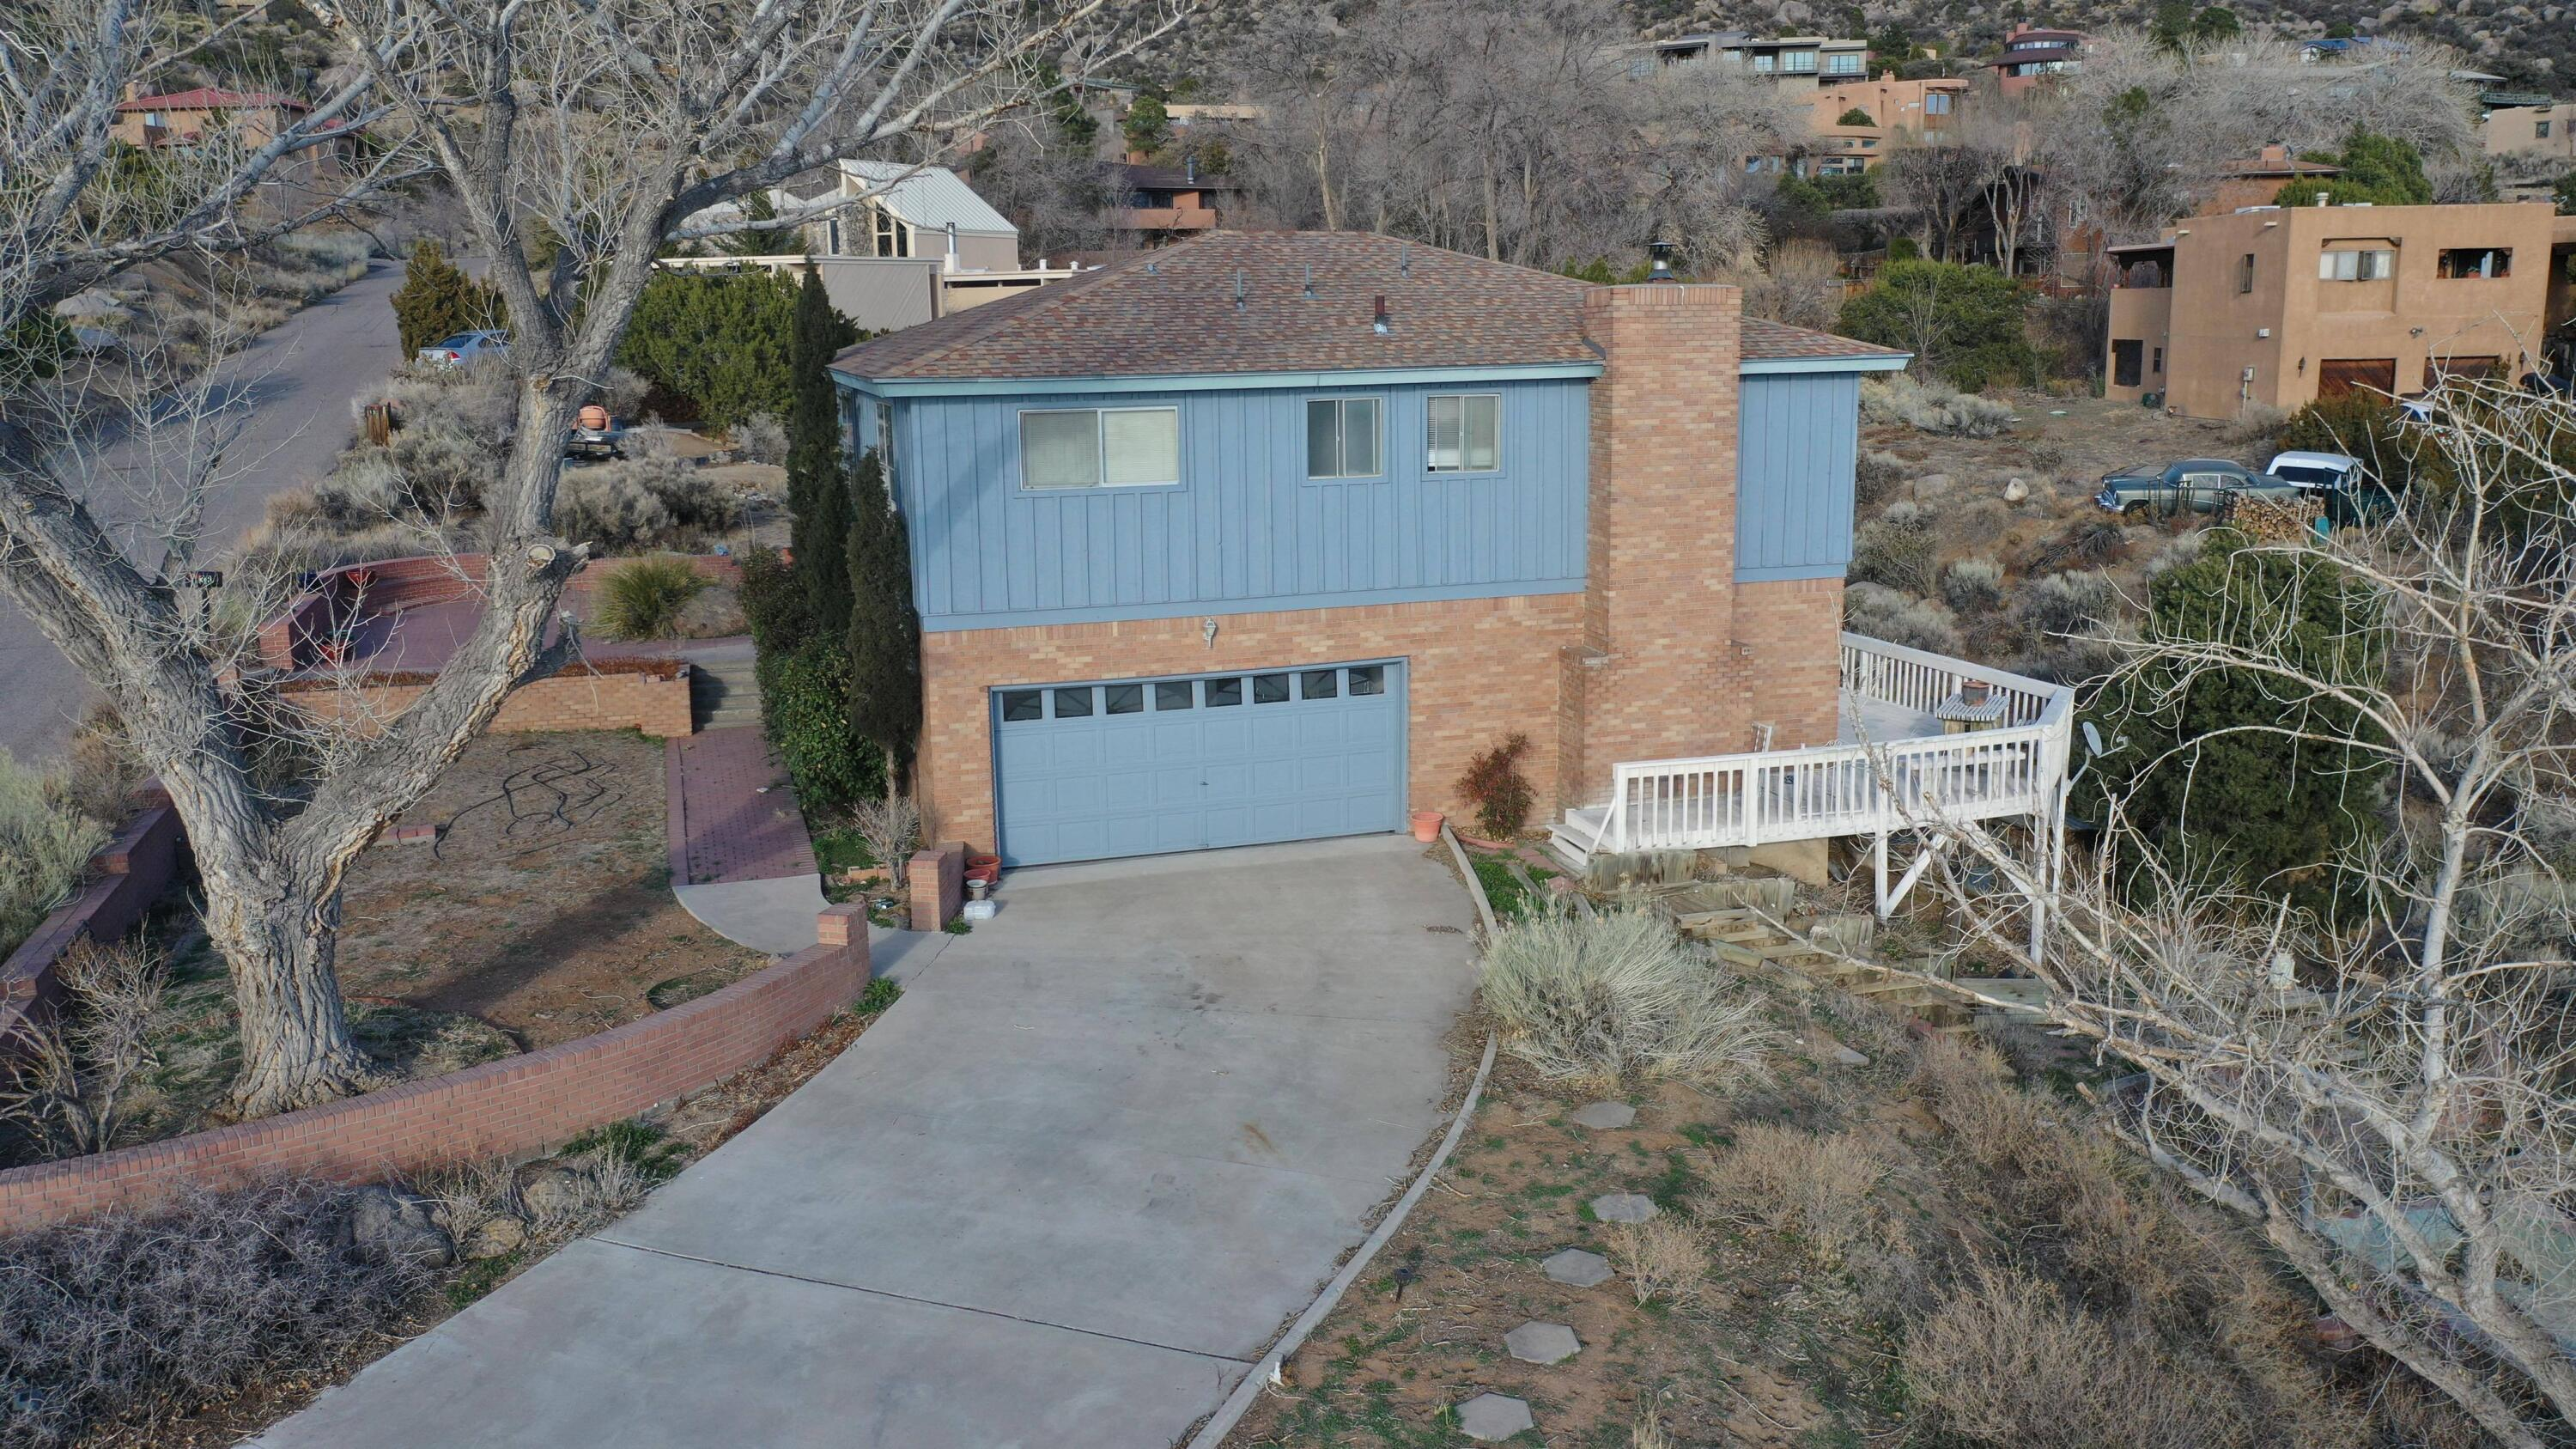 This custom 4 bedroom, 2 1/2 bath, tri-level property sits in the beautiful Sandia Heights subdivision located at the base of the Sandia mountains! The property has a great location with gorgeous views of the Sandias and the city. Enjoy these views from the 600 sq ft wrap around deck. The unfinished 700 sq ft basement offers potential for a bonus room! The septic system and roof have been replaced in the last 10 years! This home is ready for a new owner to capitalize on it's potential!View this home via Matterport Mapping and Aerial Video!